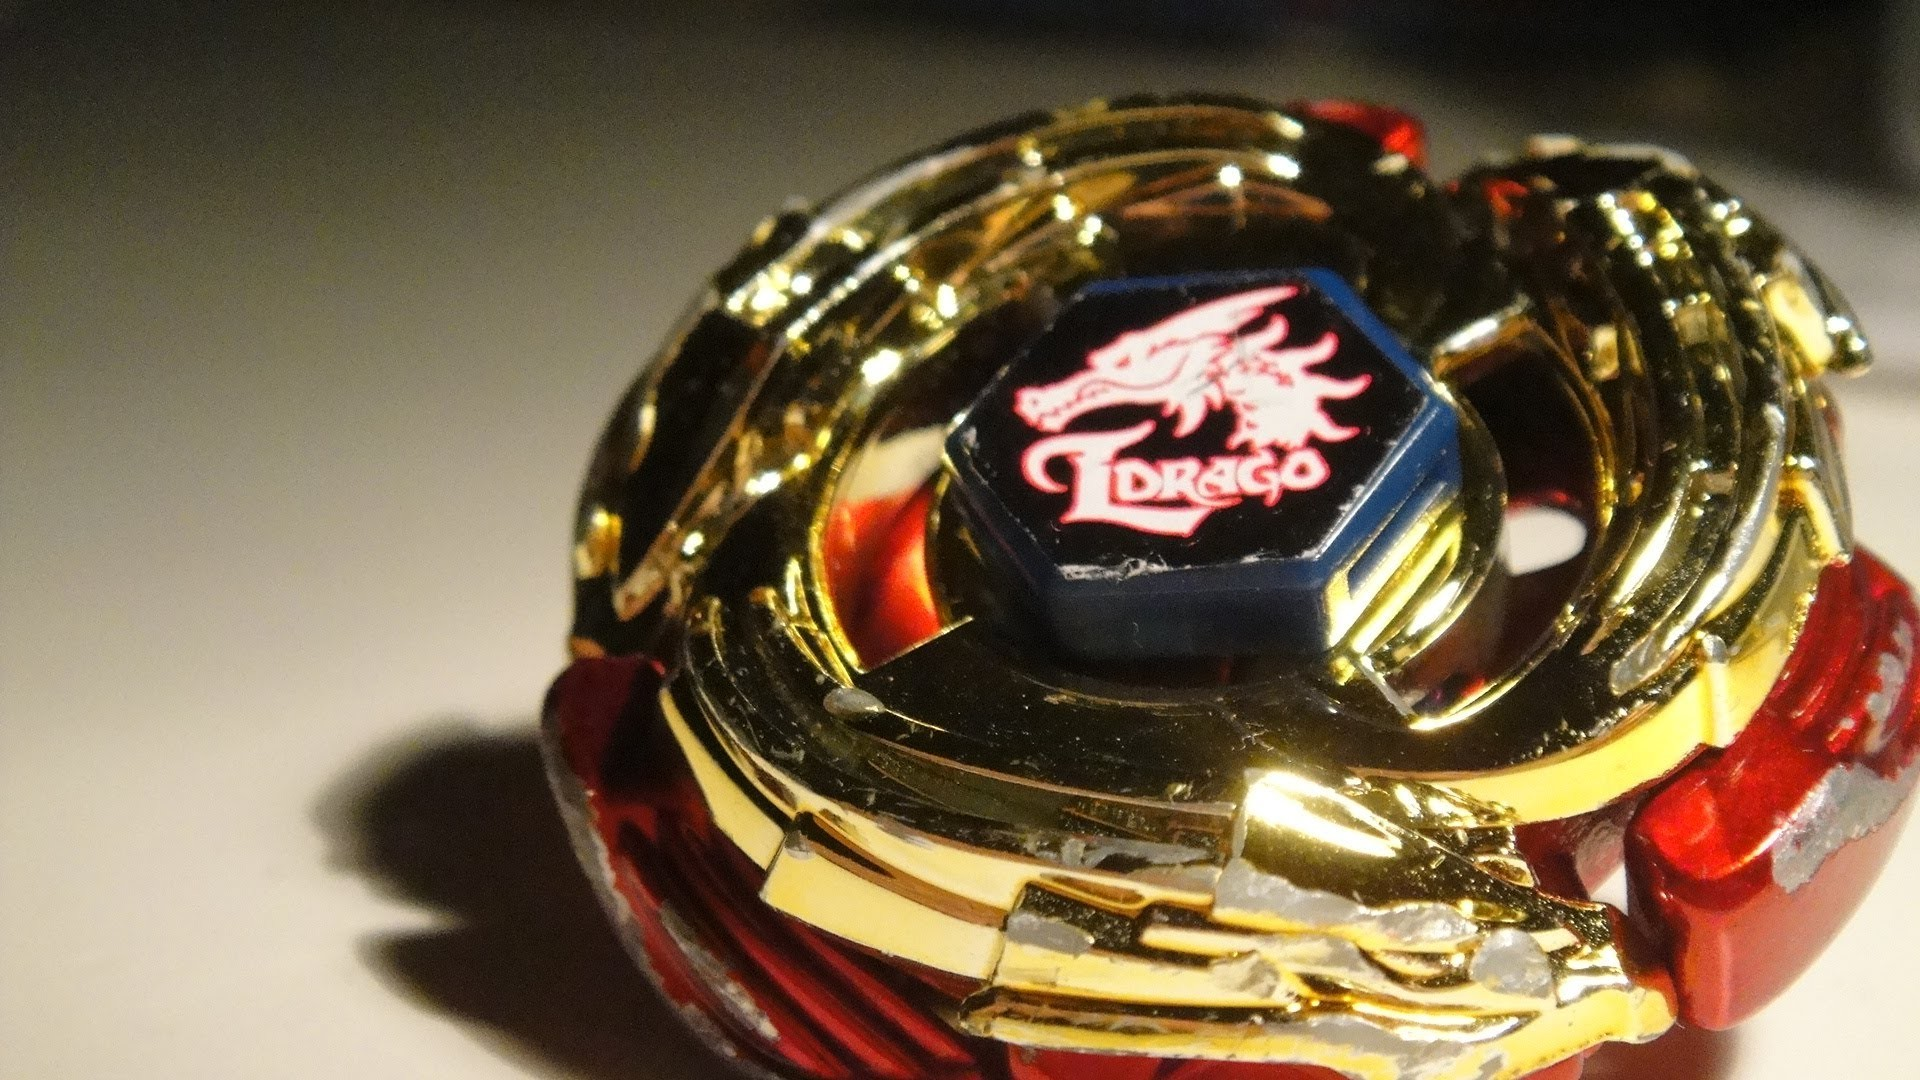 HD: Free Beyblade GiveAway #2! (OVER) Lightning L-Drago 100HF (Special  Edition Ver)